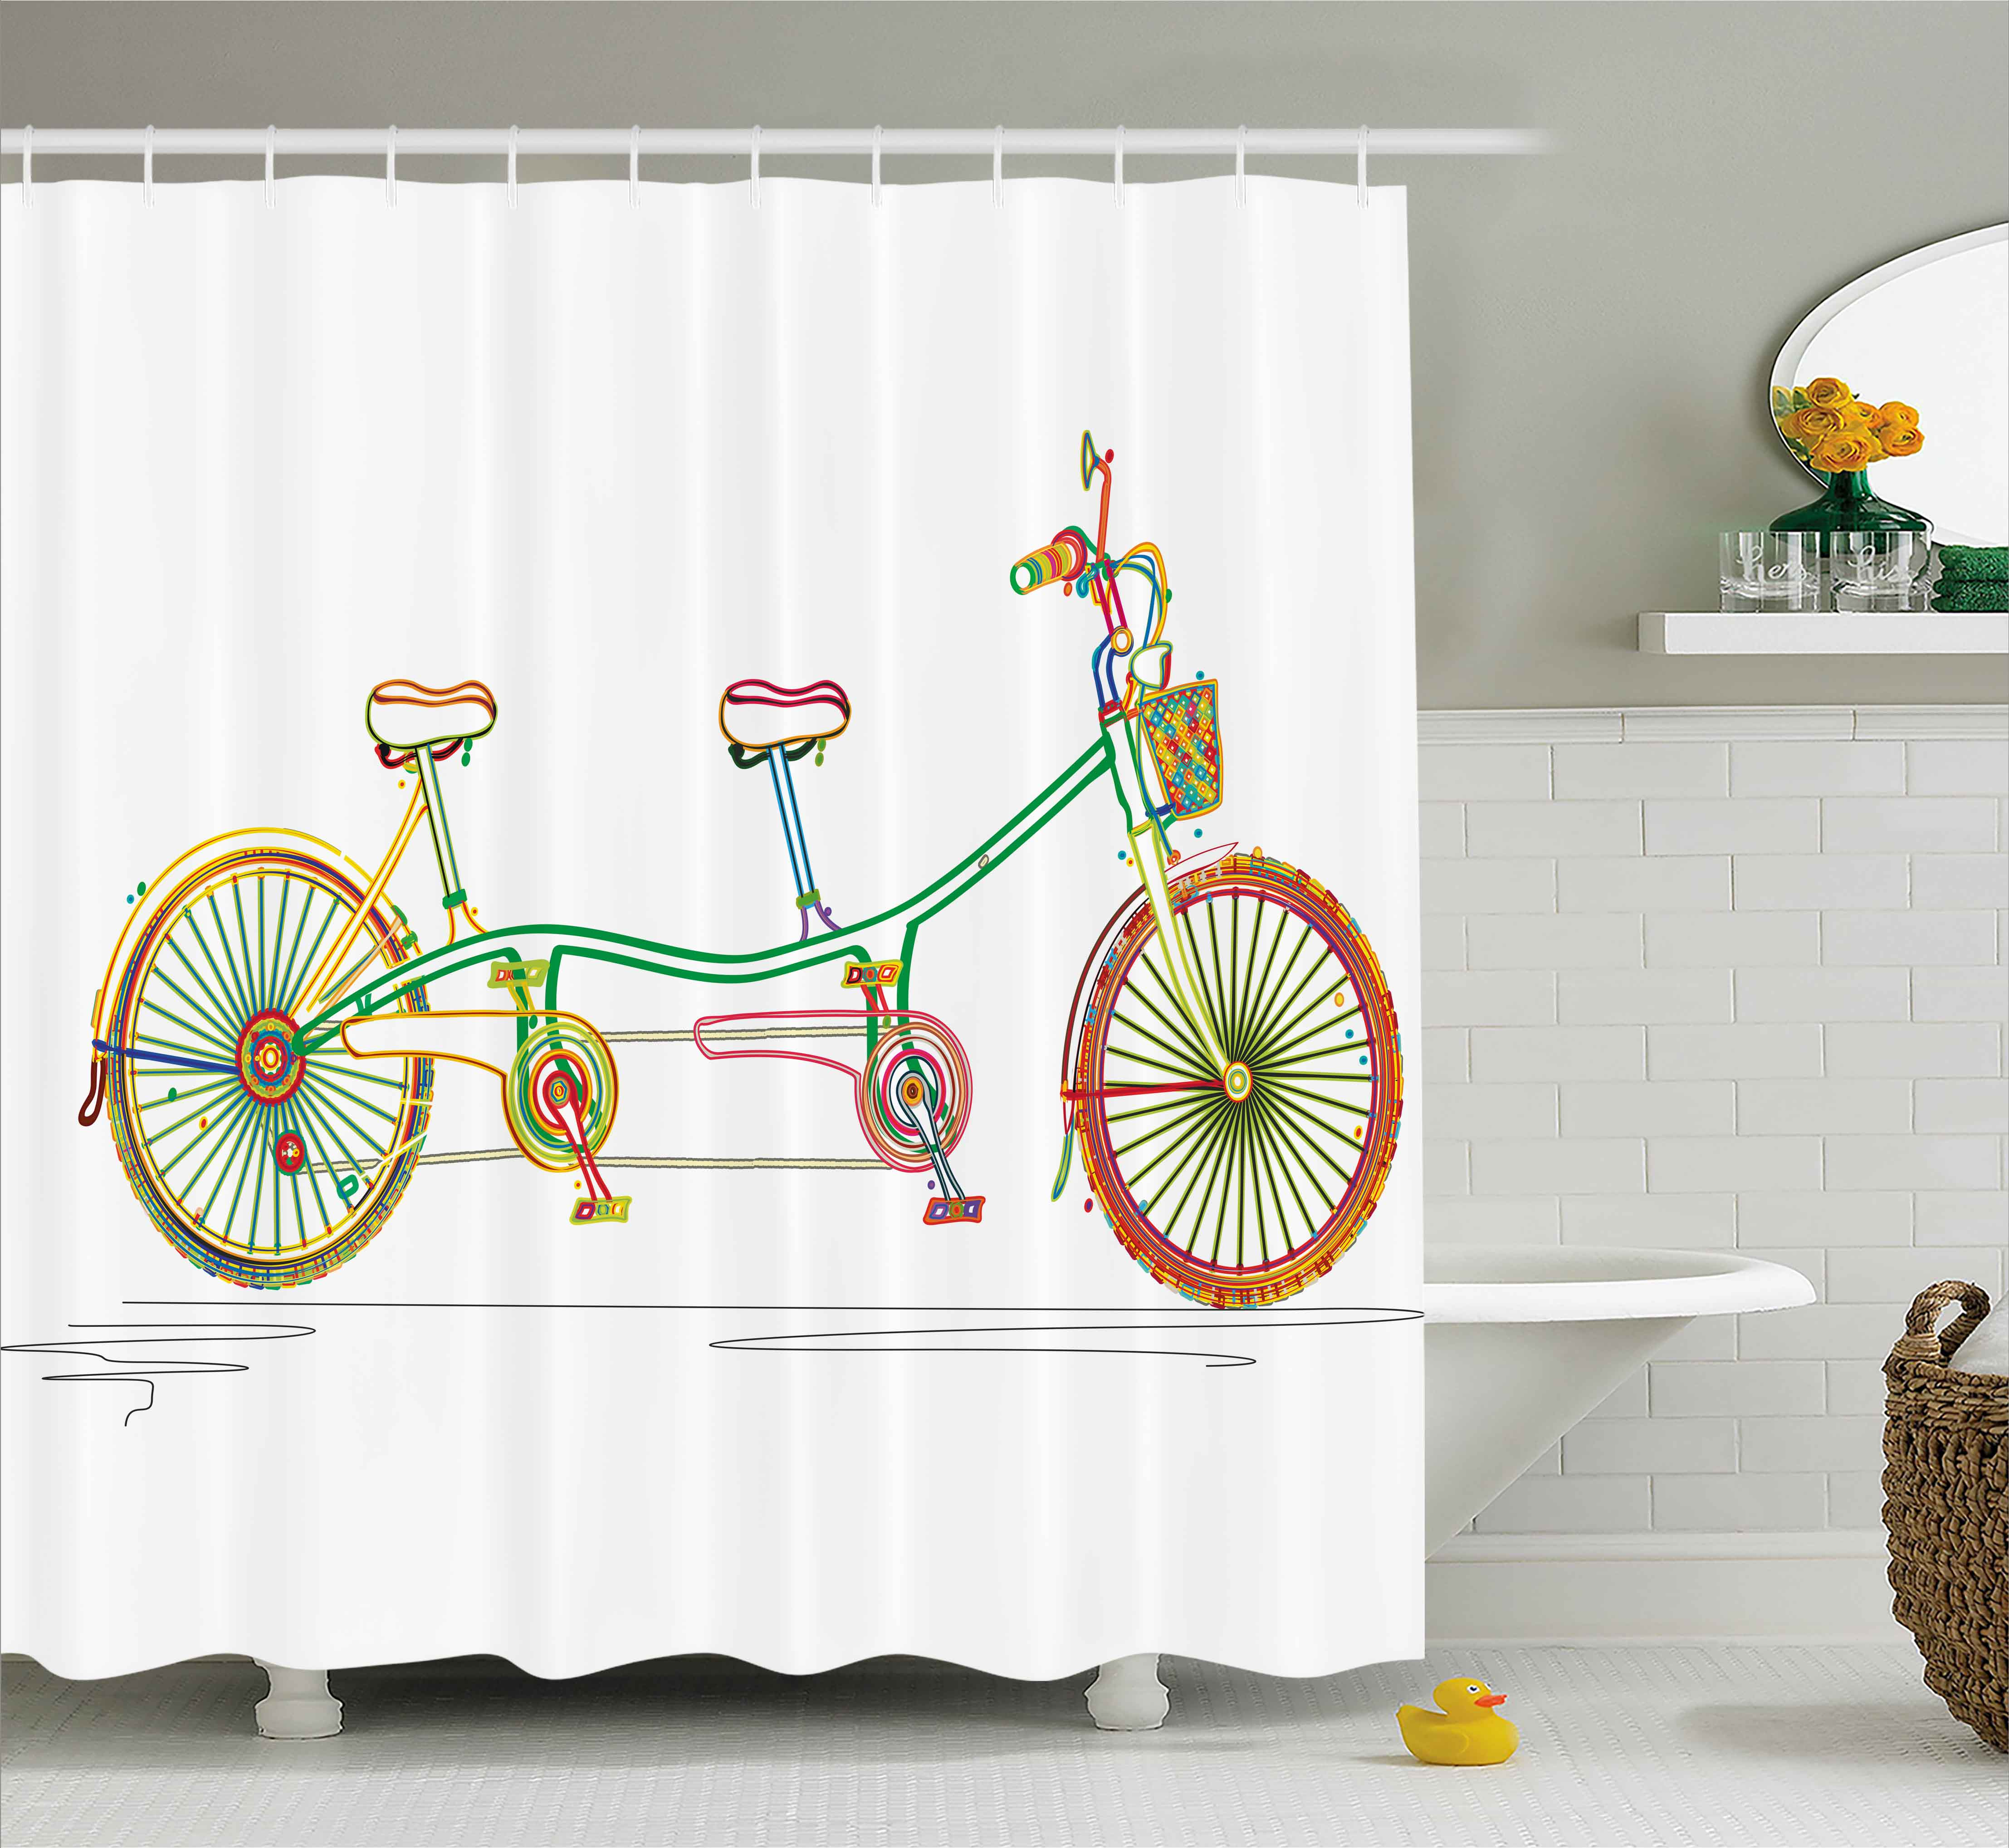 Decorative Shower Curtain, Colorful Tandem Bicycle Design on White Background Pattern Clipart Style Print, Fabric Bathroom Set with Hooks, 69W X 84L Inches Extra Long, Multicolor, by Ambesonne